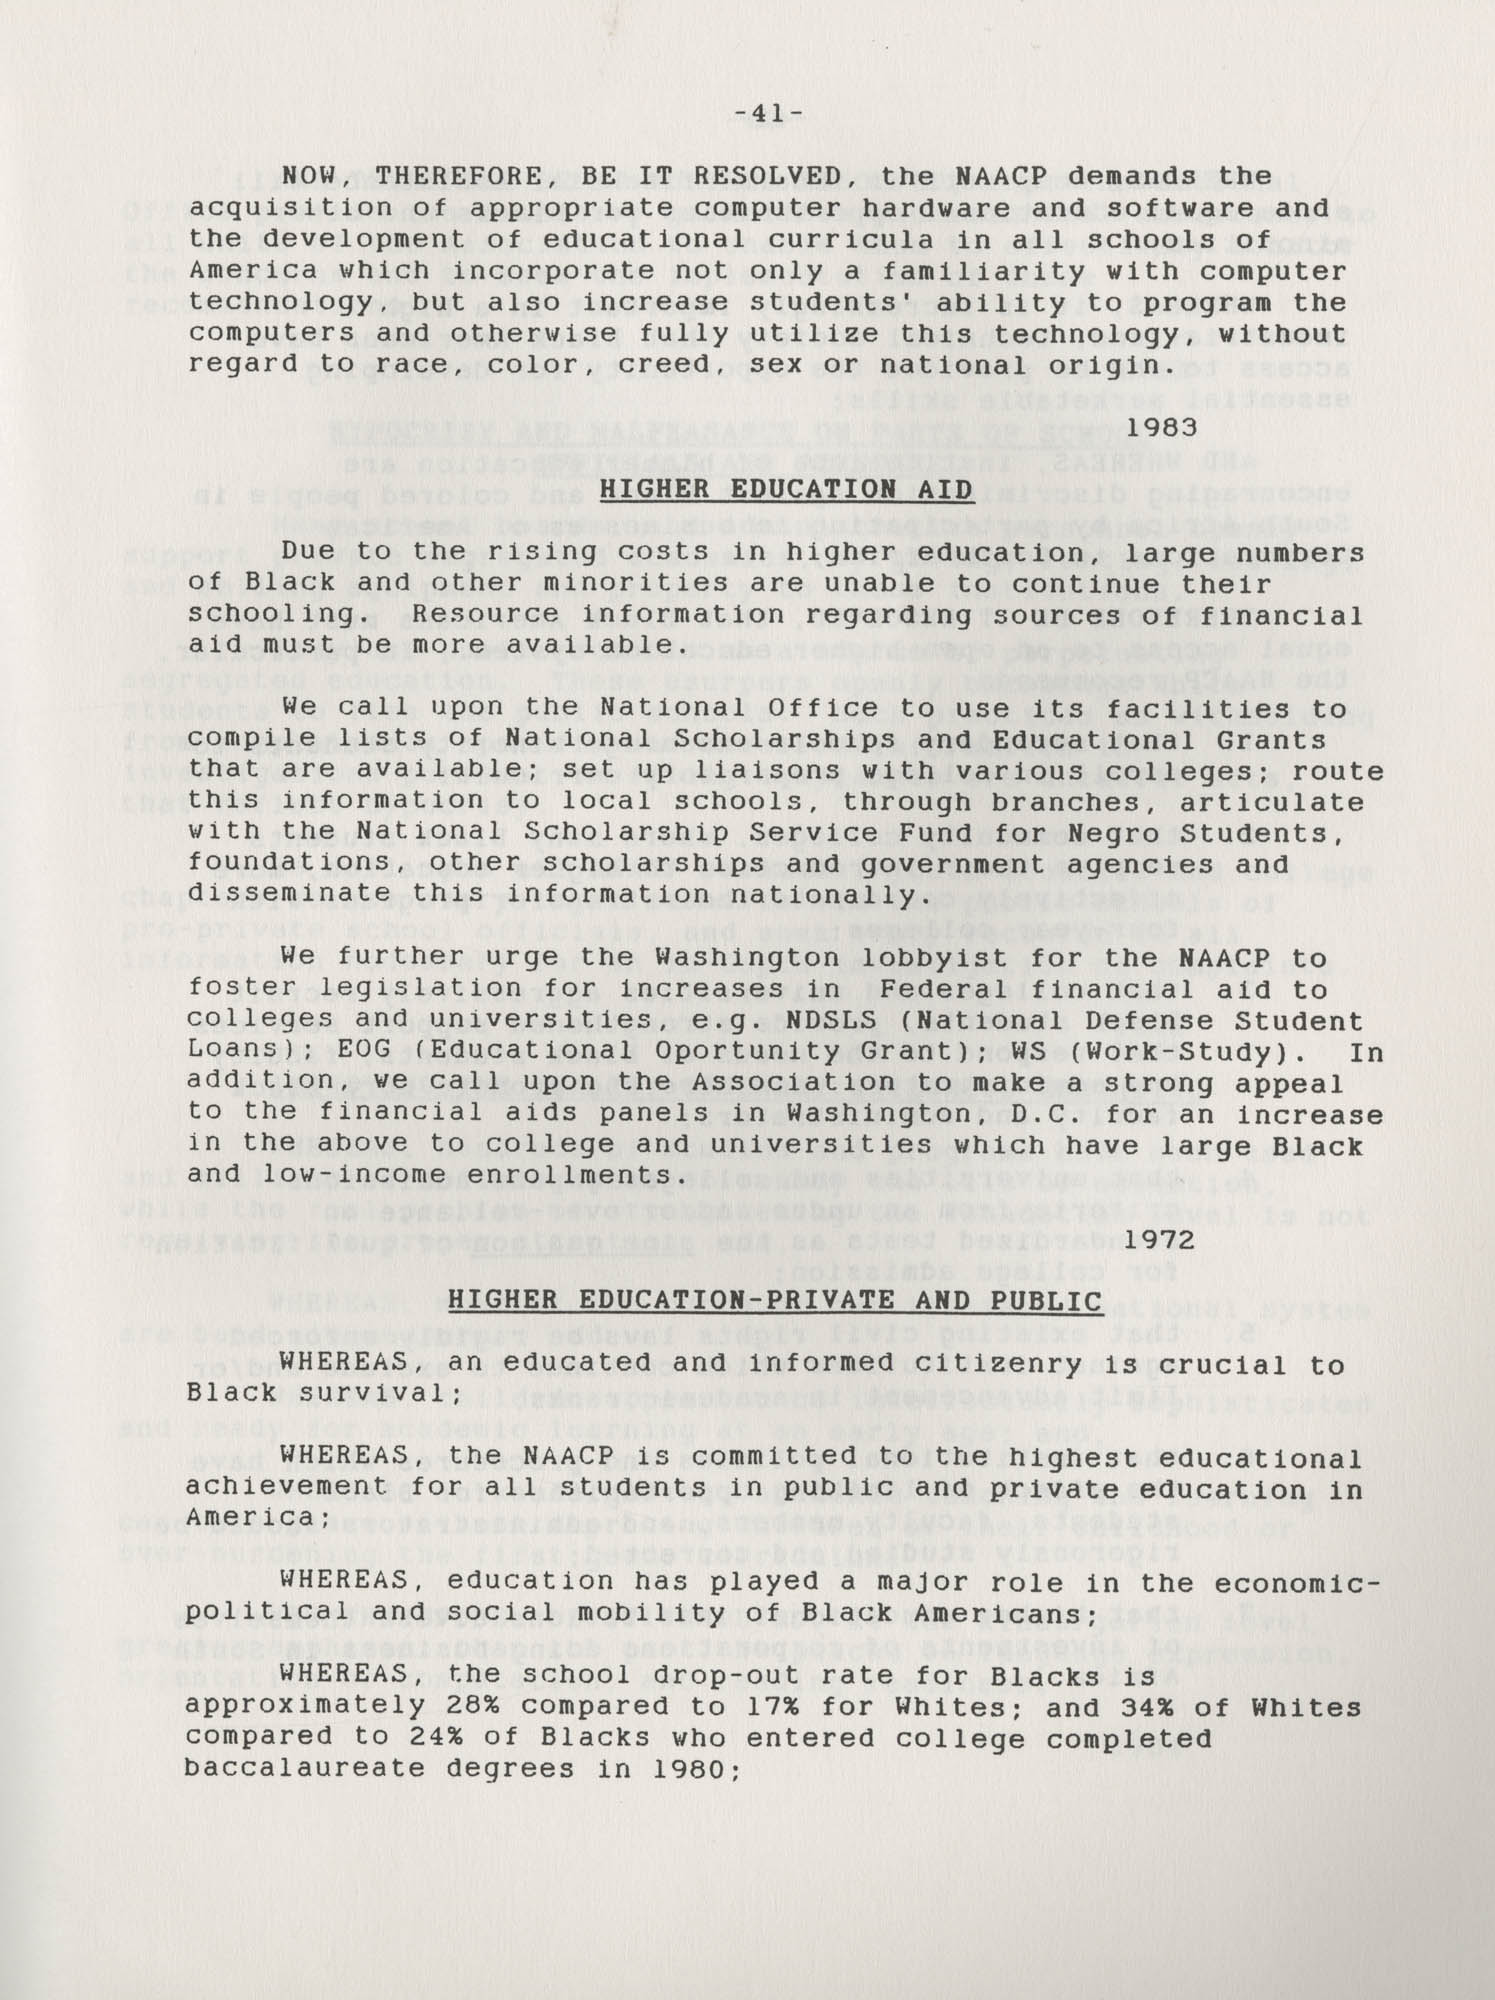 NAACP Resolutions on Education, 1970-1989, Index to Education Resolutions, Page 41